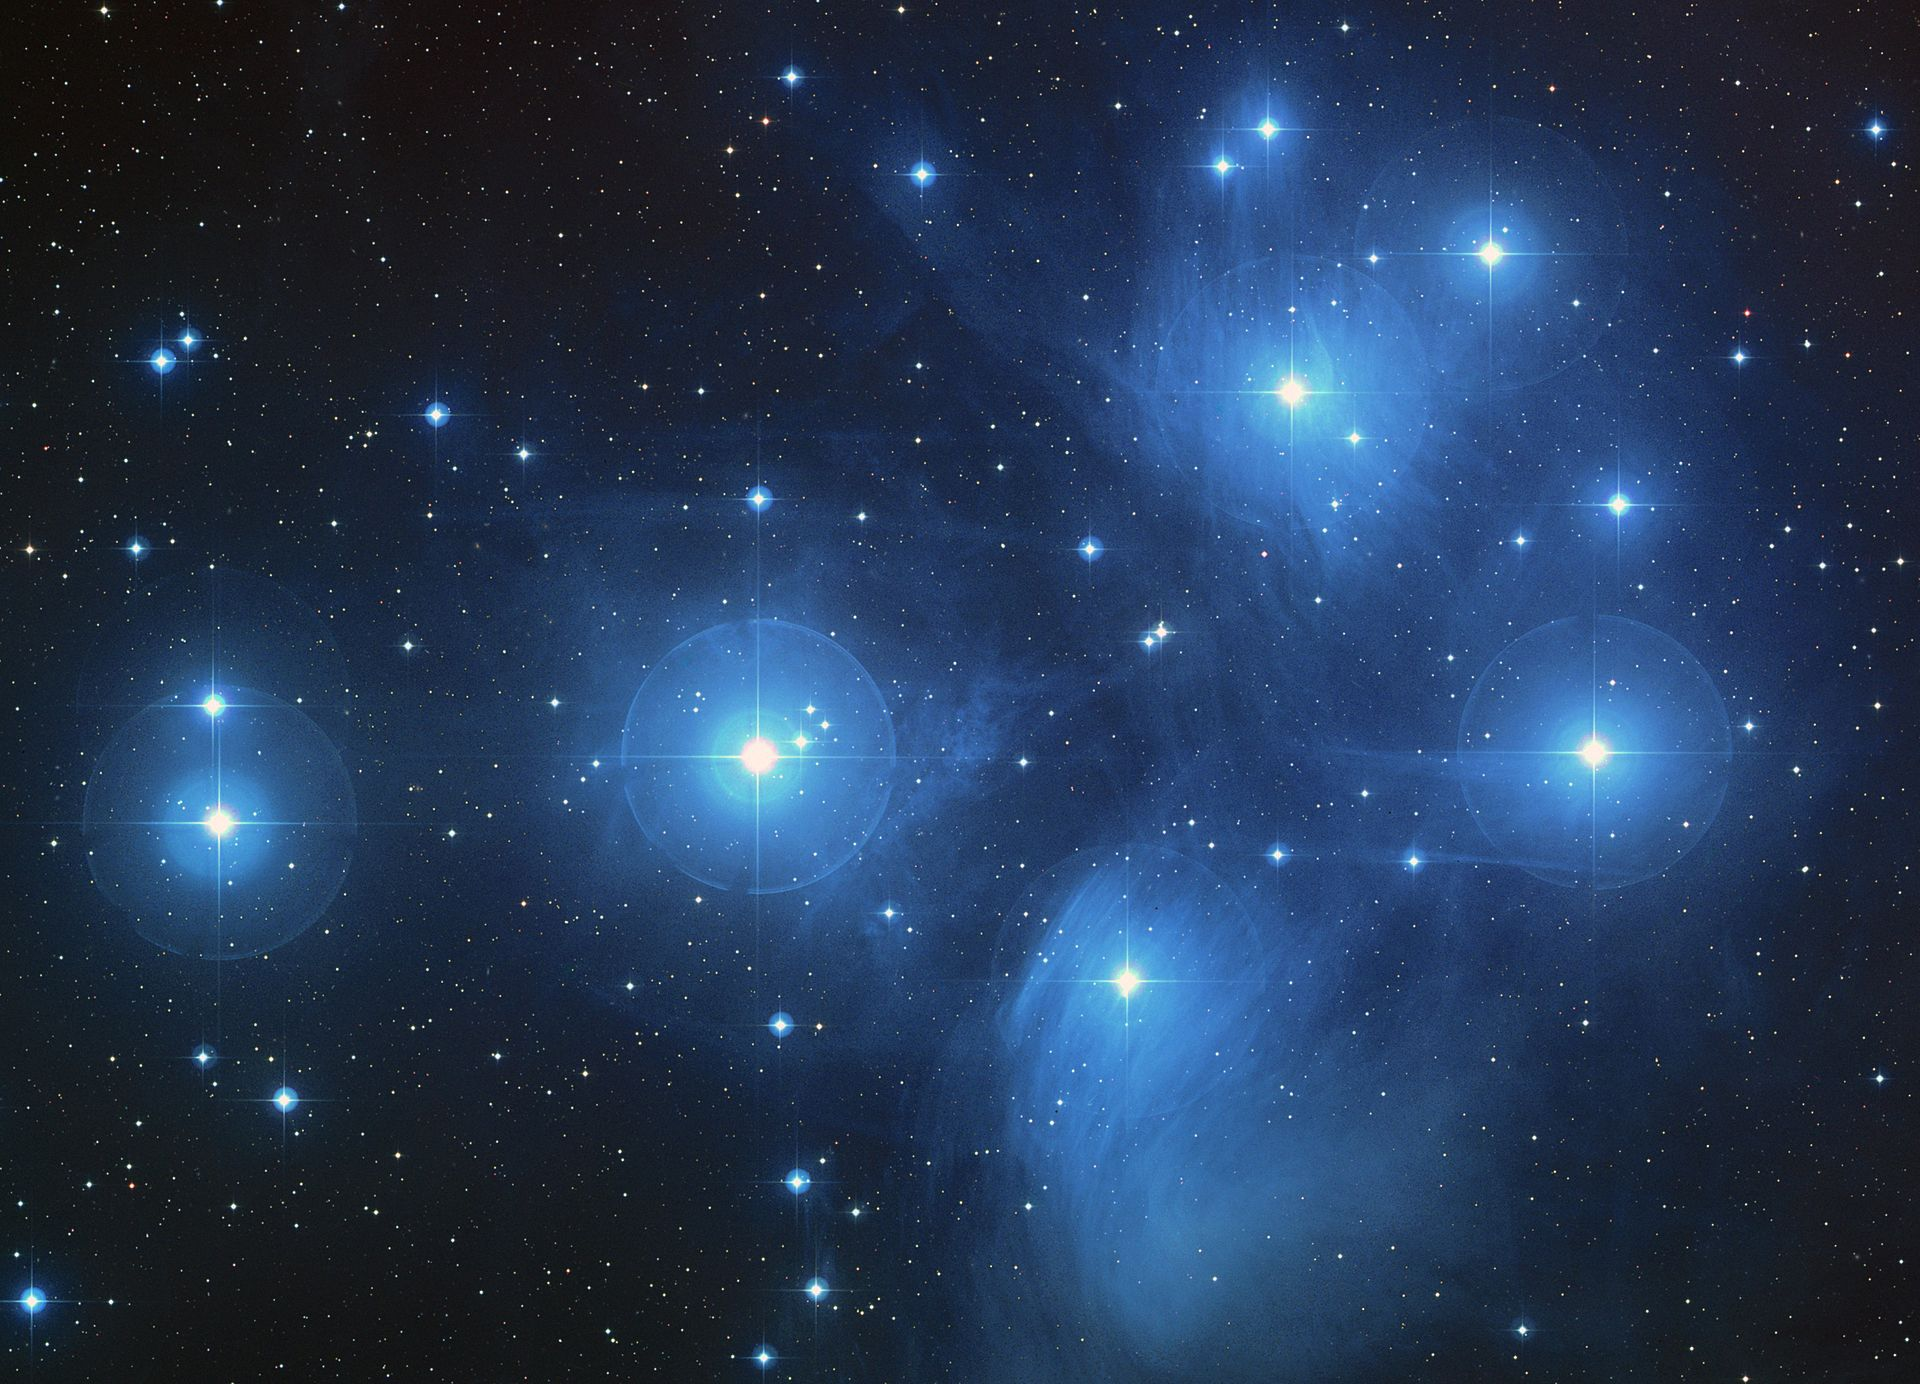 The   Pleiades  , an   open cluster   consisting of approximately 3,000   stars   at a distance of 400 light-years (120 parsecs) from   Earth   in the constellation of   Taurus